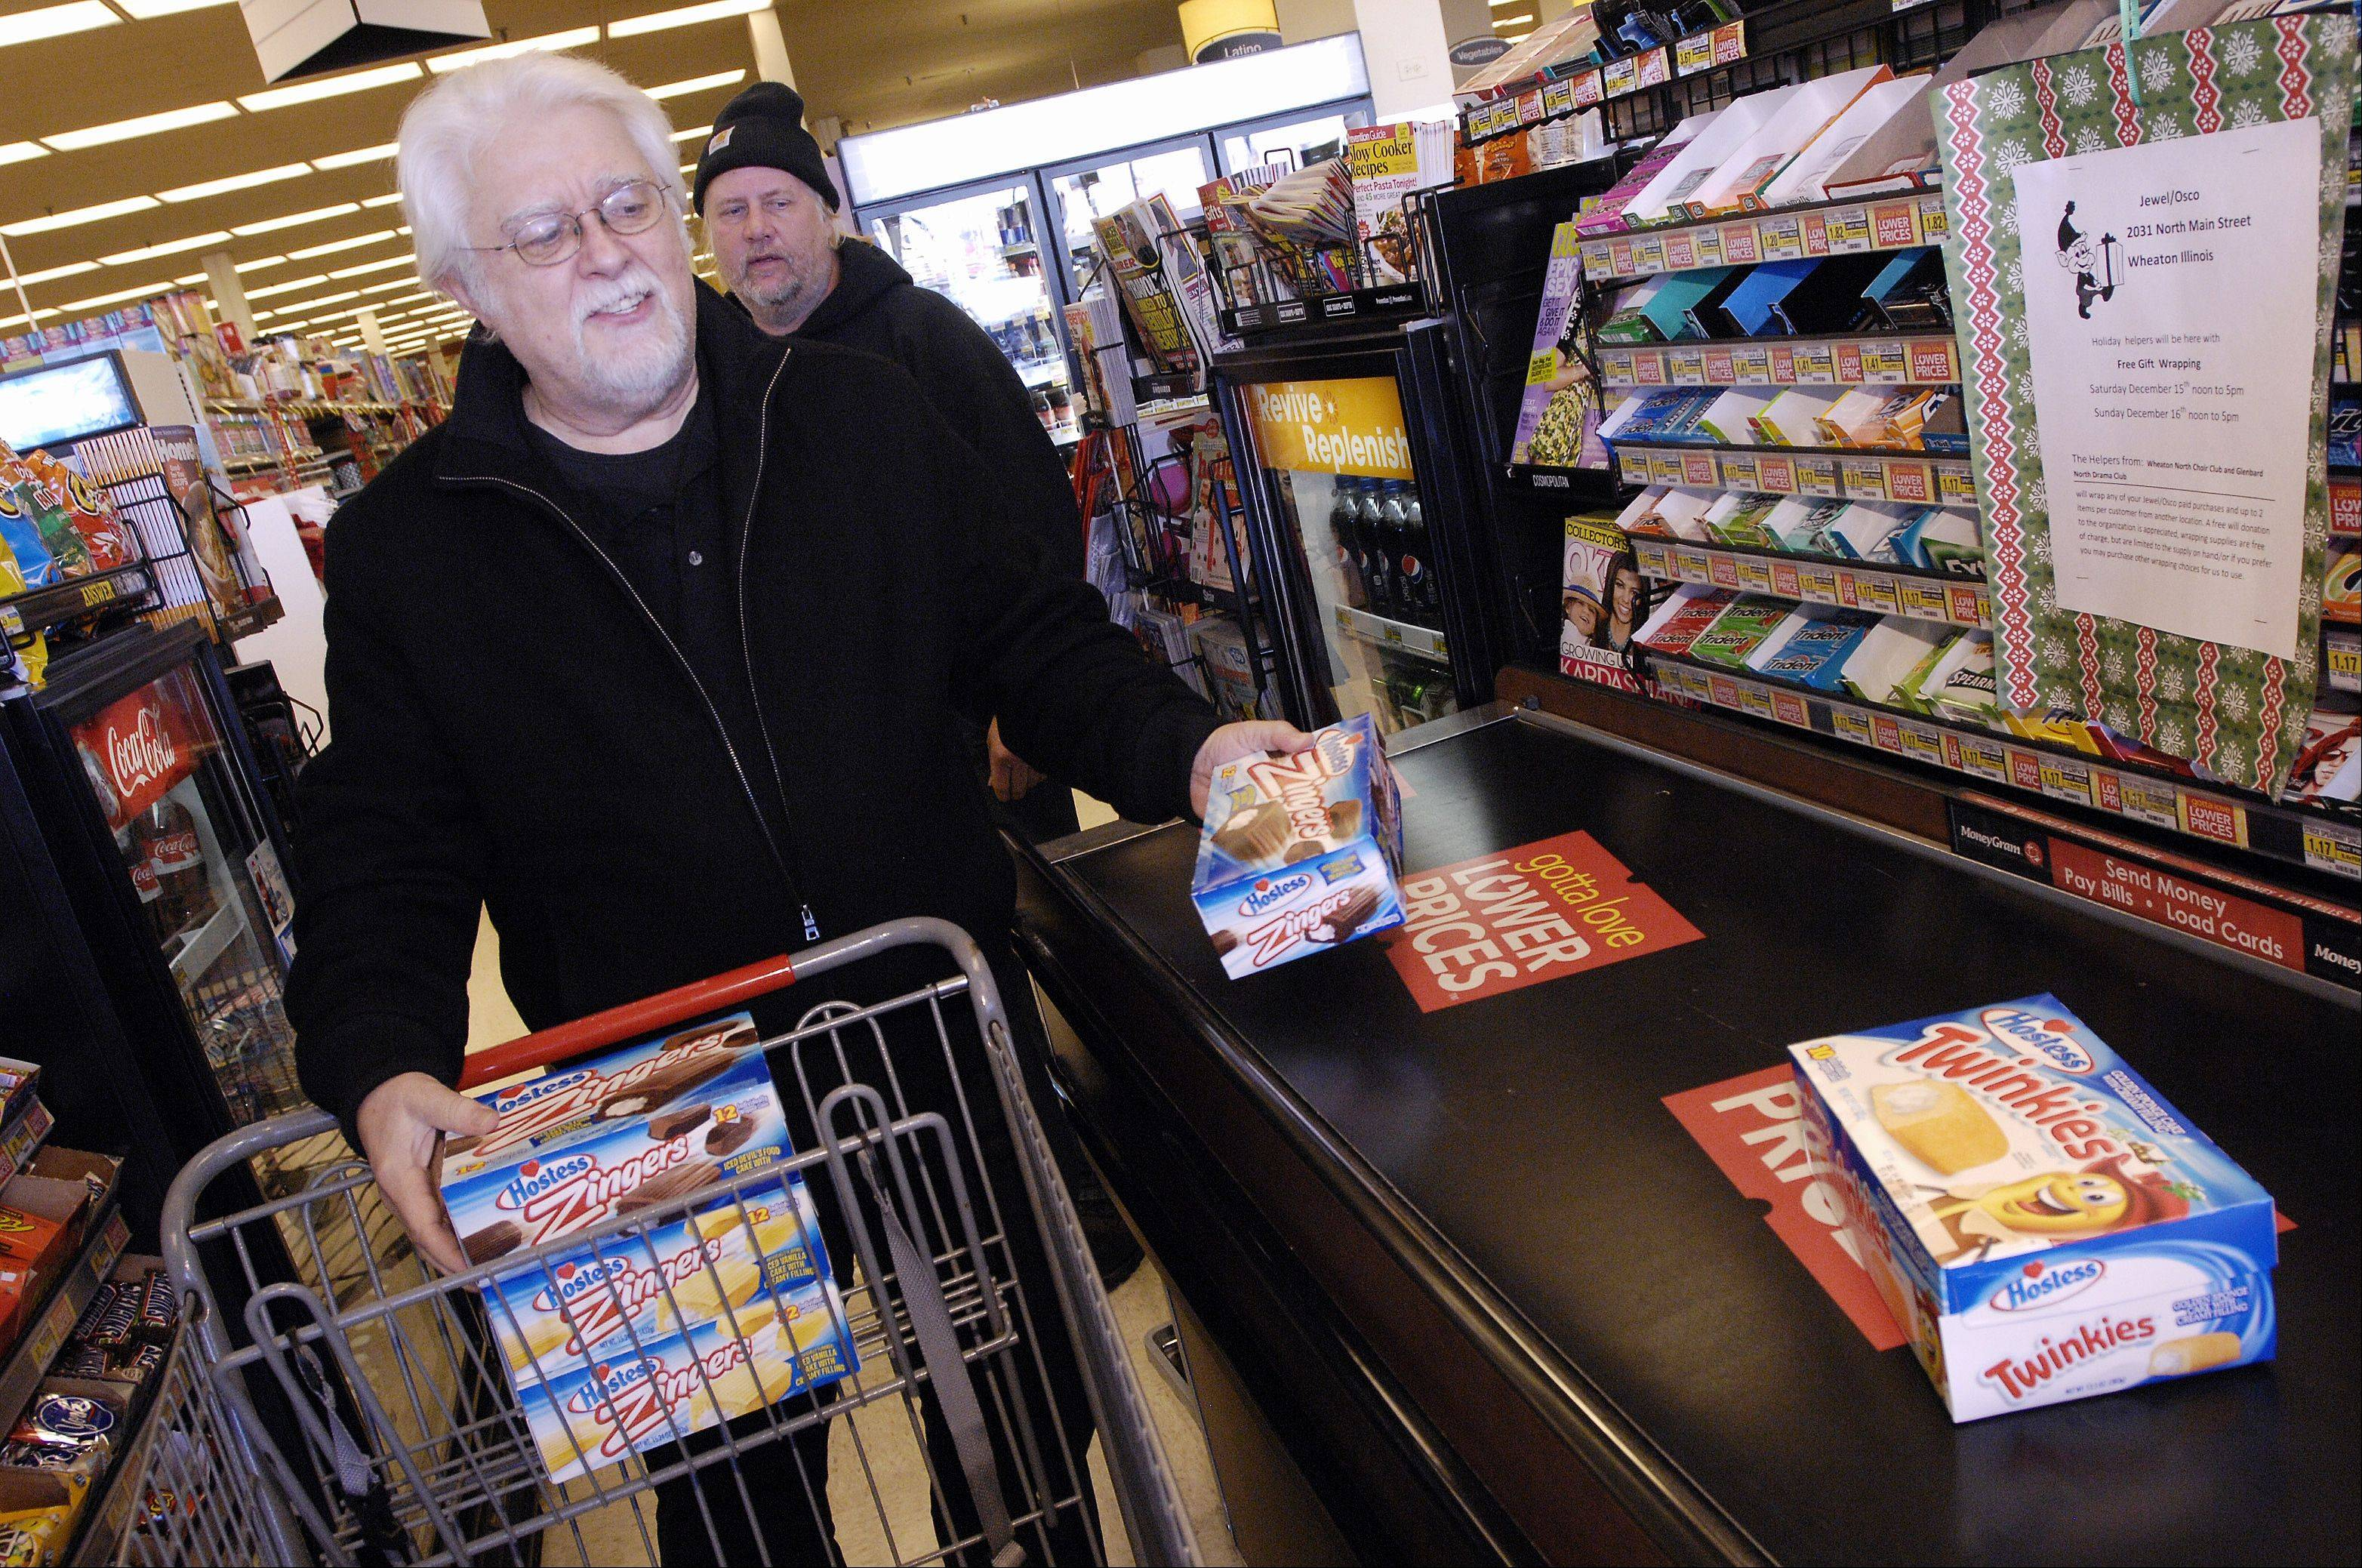 Jewel customer Bob Gunnison of Carol Stream snatched up the last of the Twinkies at the Wheaton Jewel. As of 9am Monday morning other Hostess products were still available, such as Zingers, Ding Dongs and Cup Cakes.